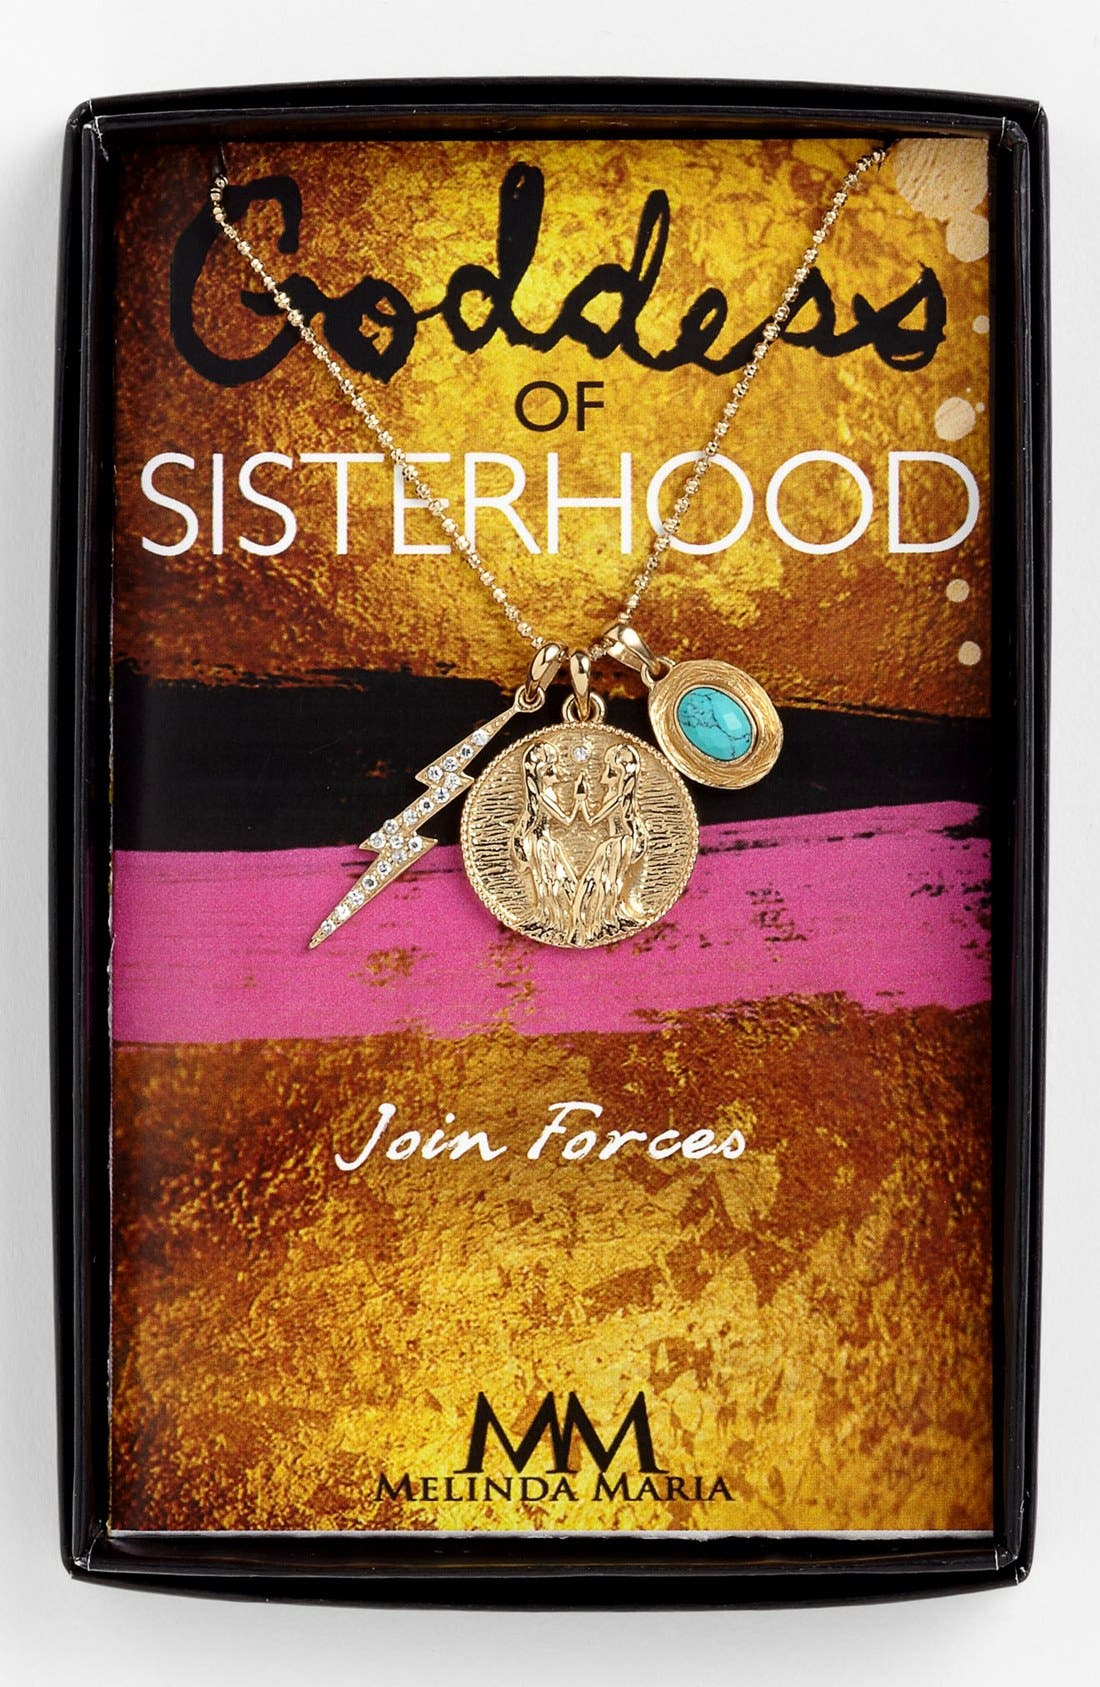 Alternate Image 1 Selected - Melinda Maria 'Goddess of Sisterhood' Cluster Pendant Necklace